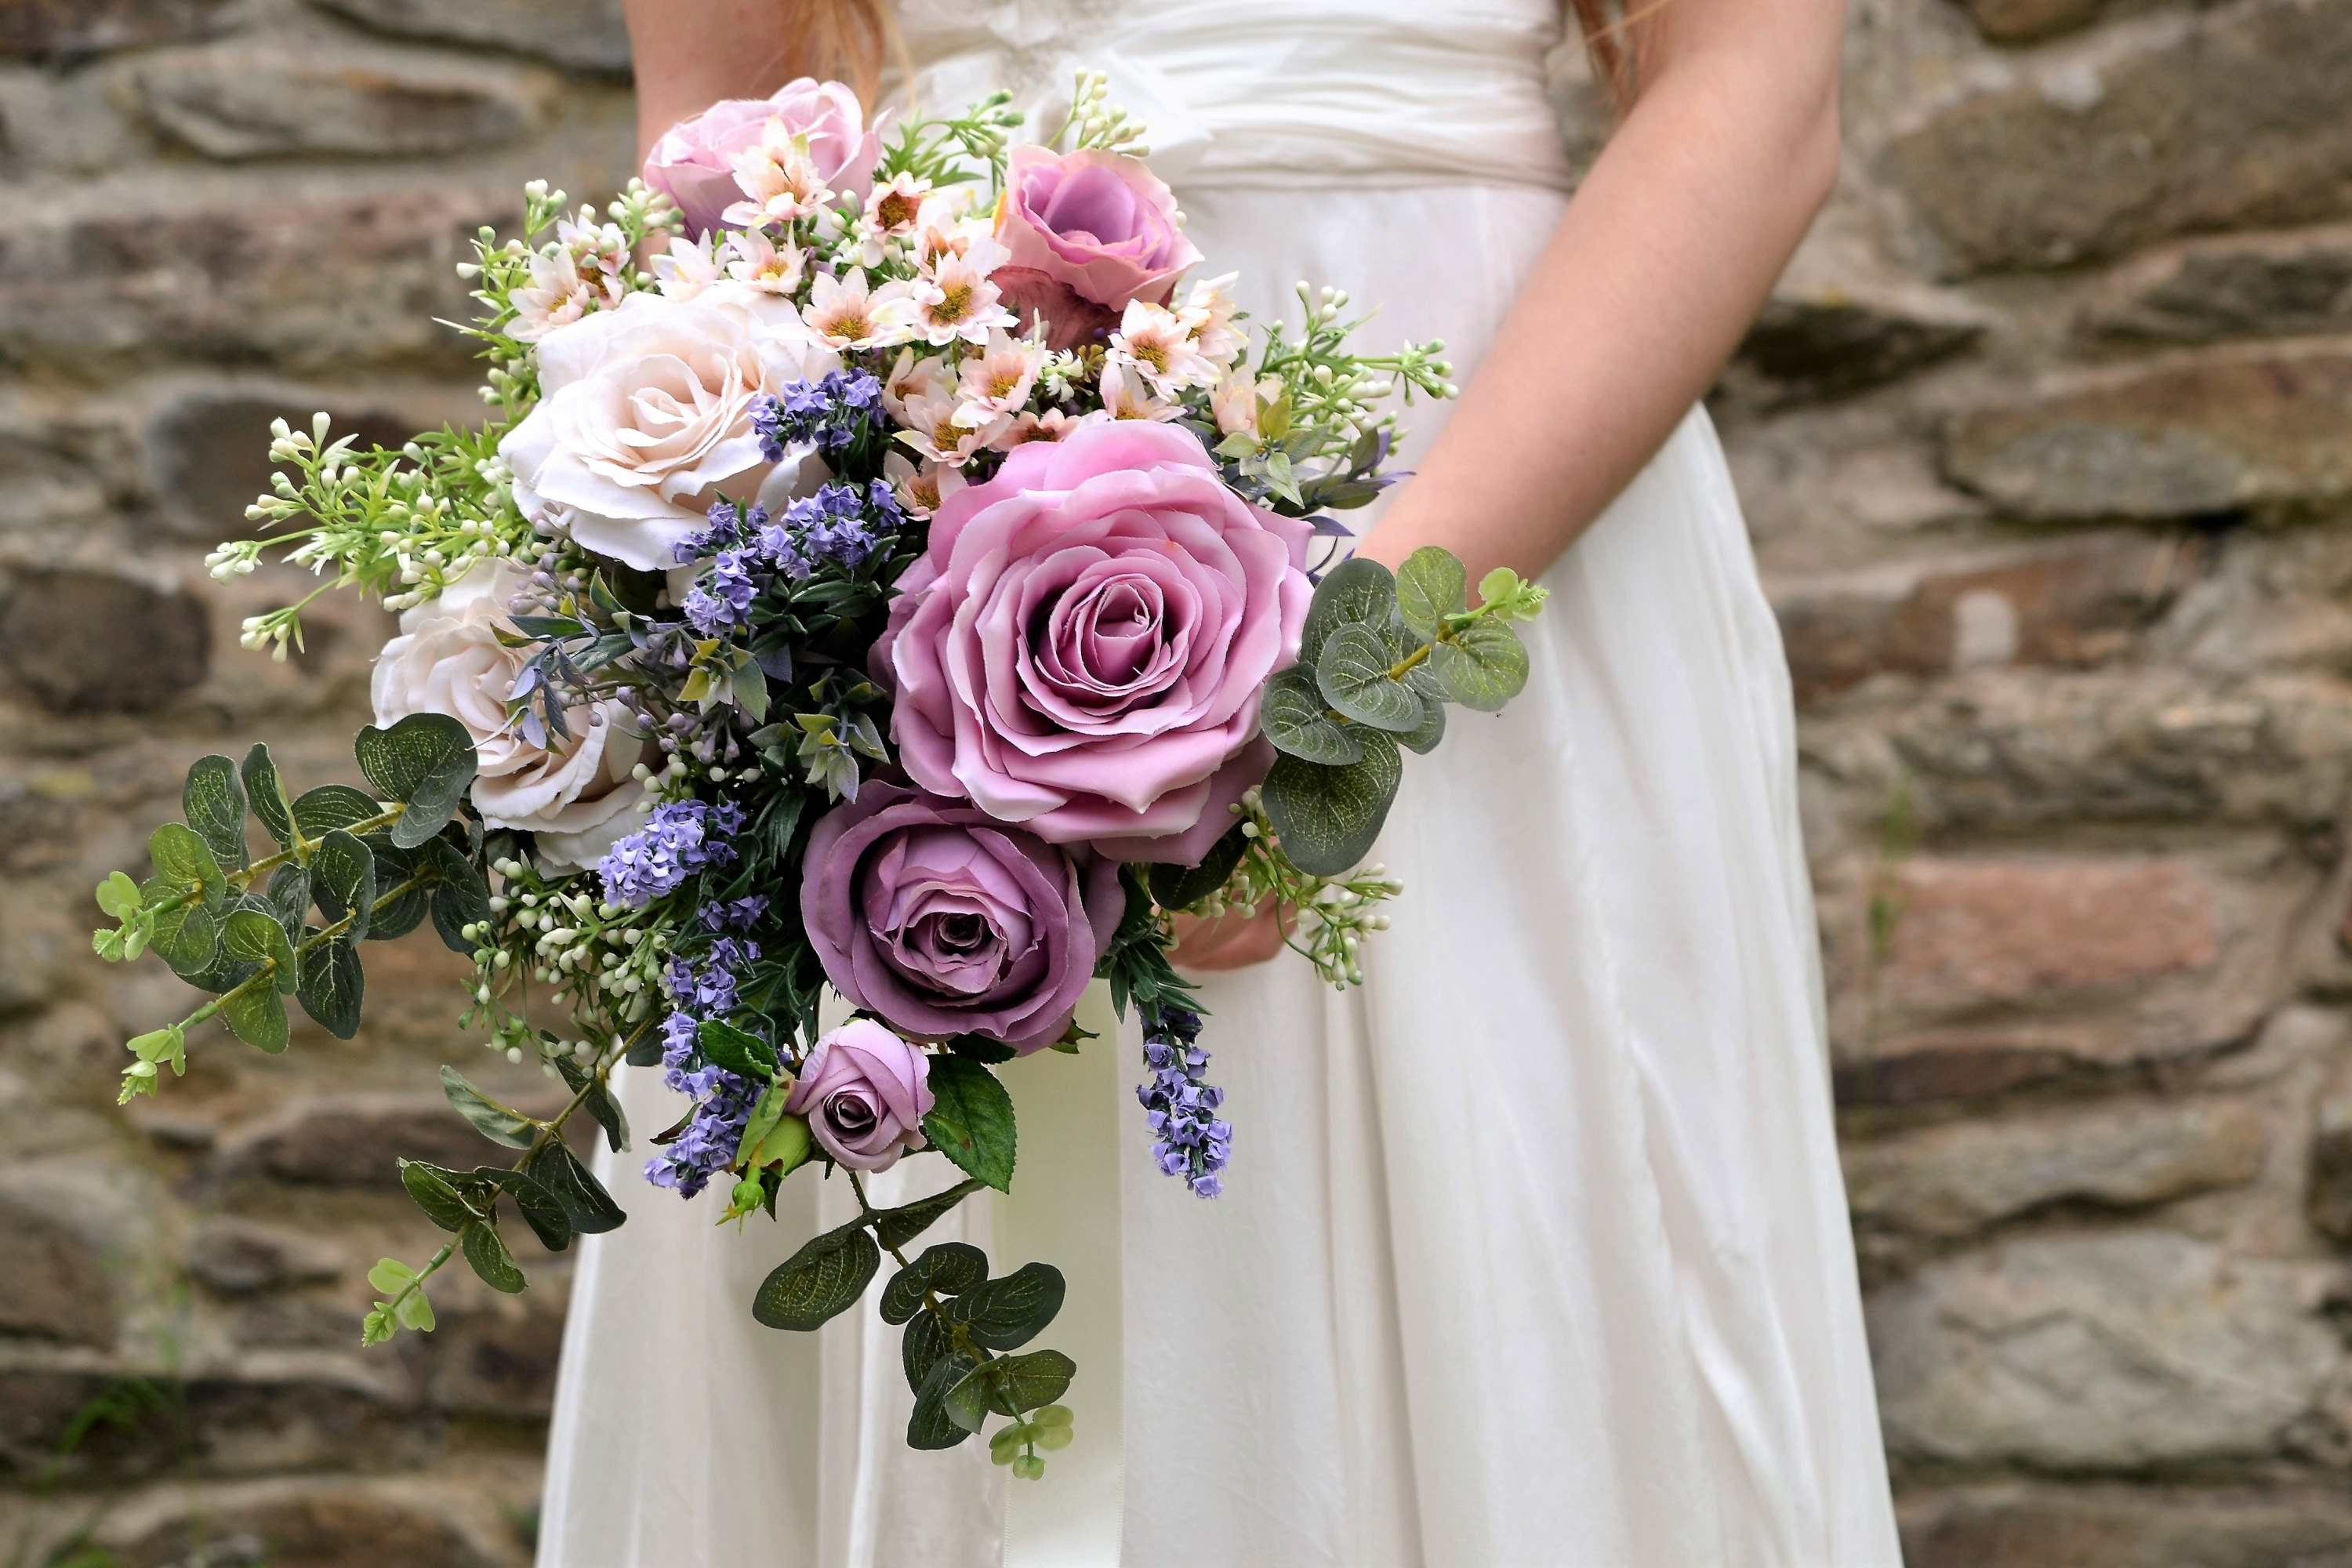 Lavender and Lilac Wedding Lilac Wedding Flowers Bouquet Silk Bridal Bouquet Wedding Flowers Artificial Flowers rose bouquet